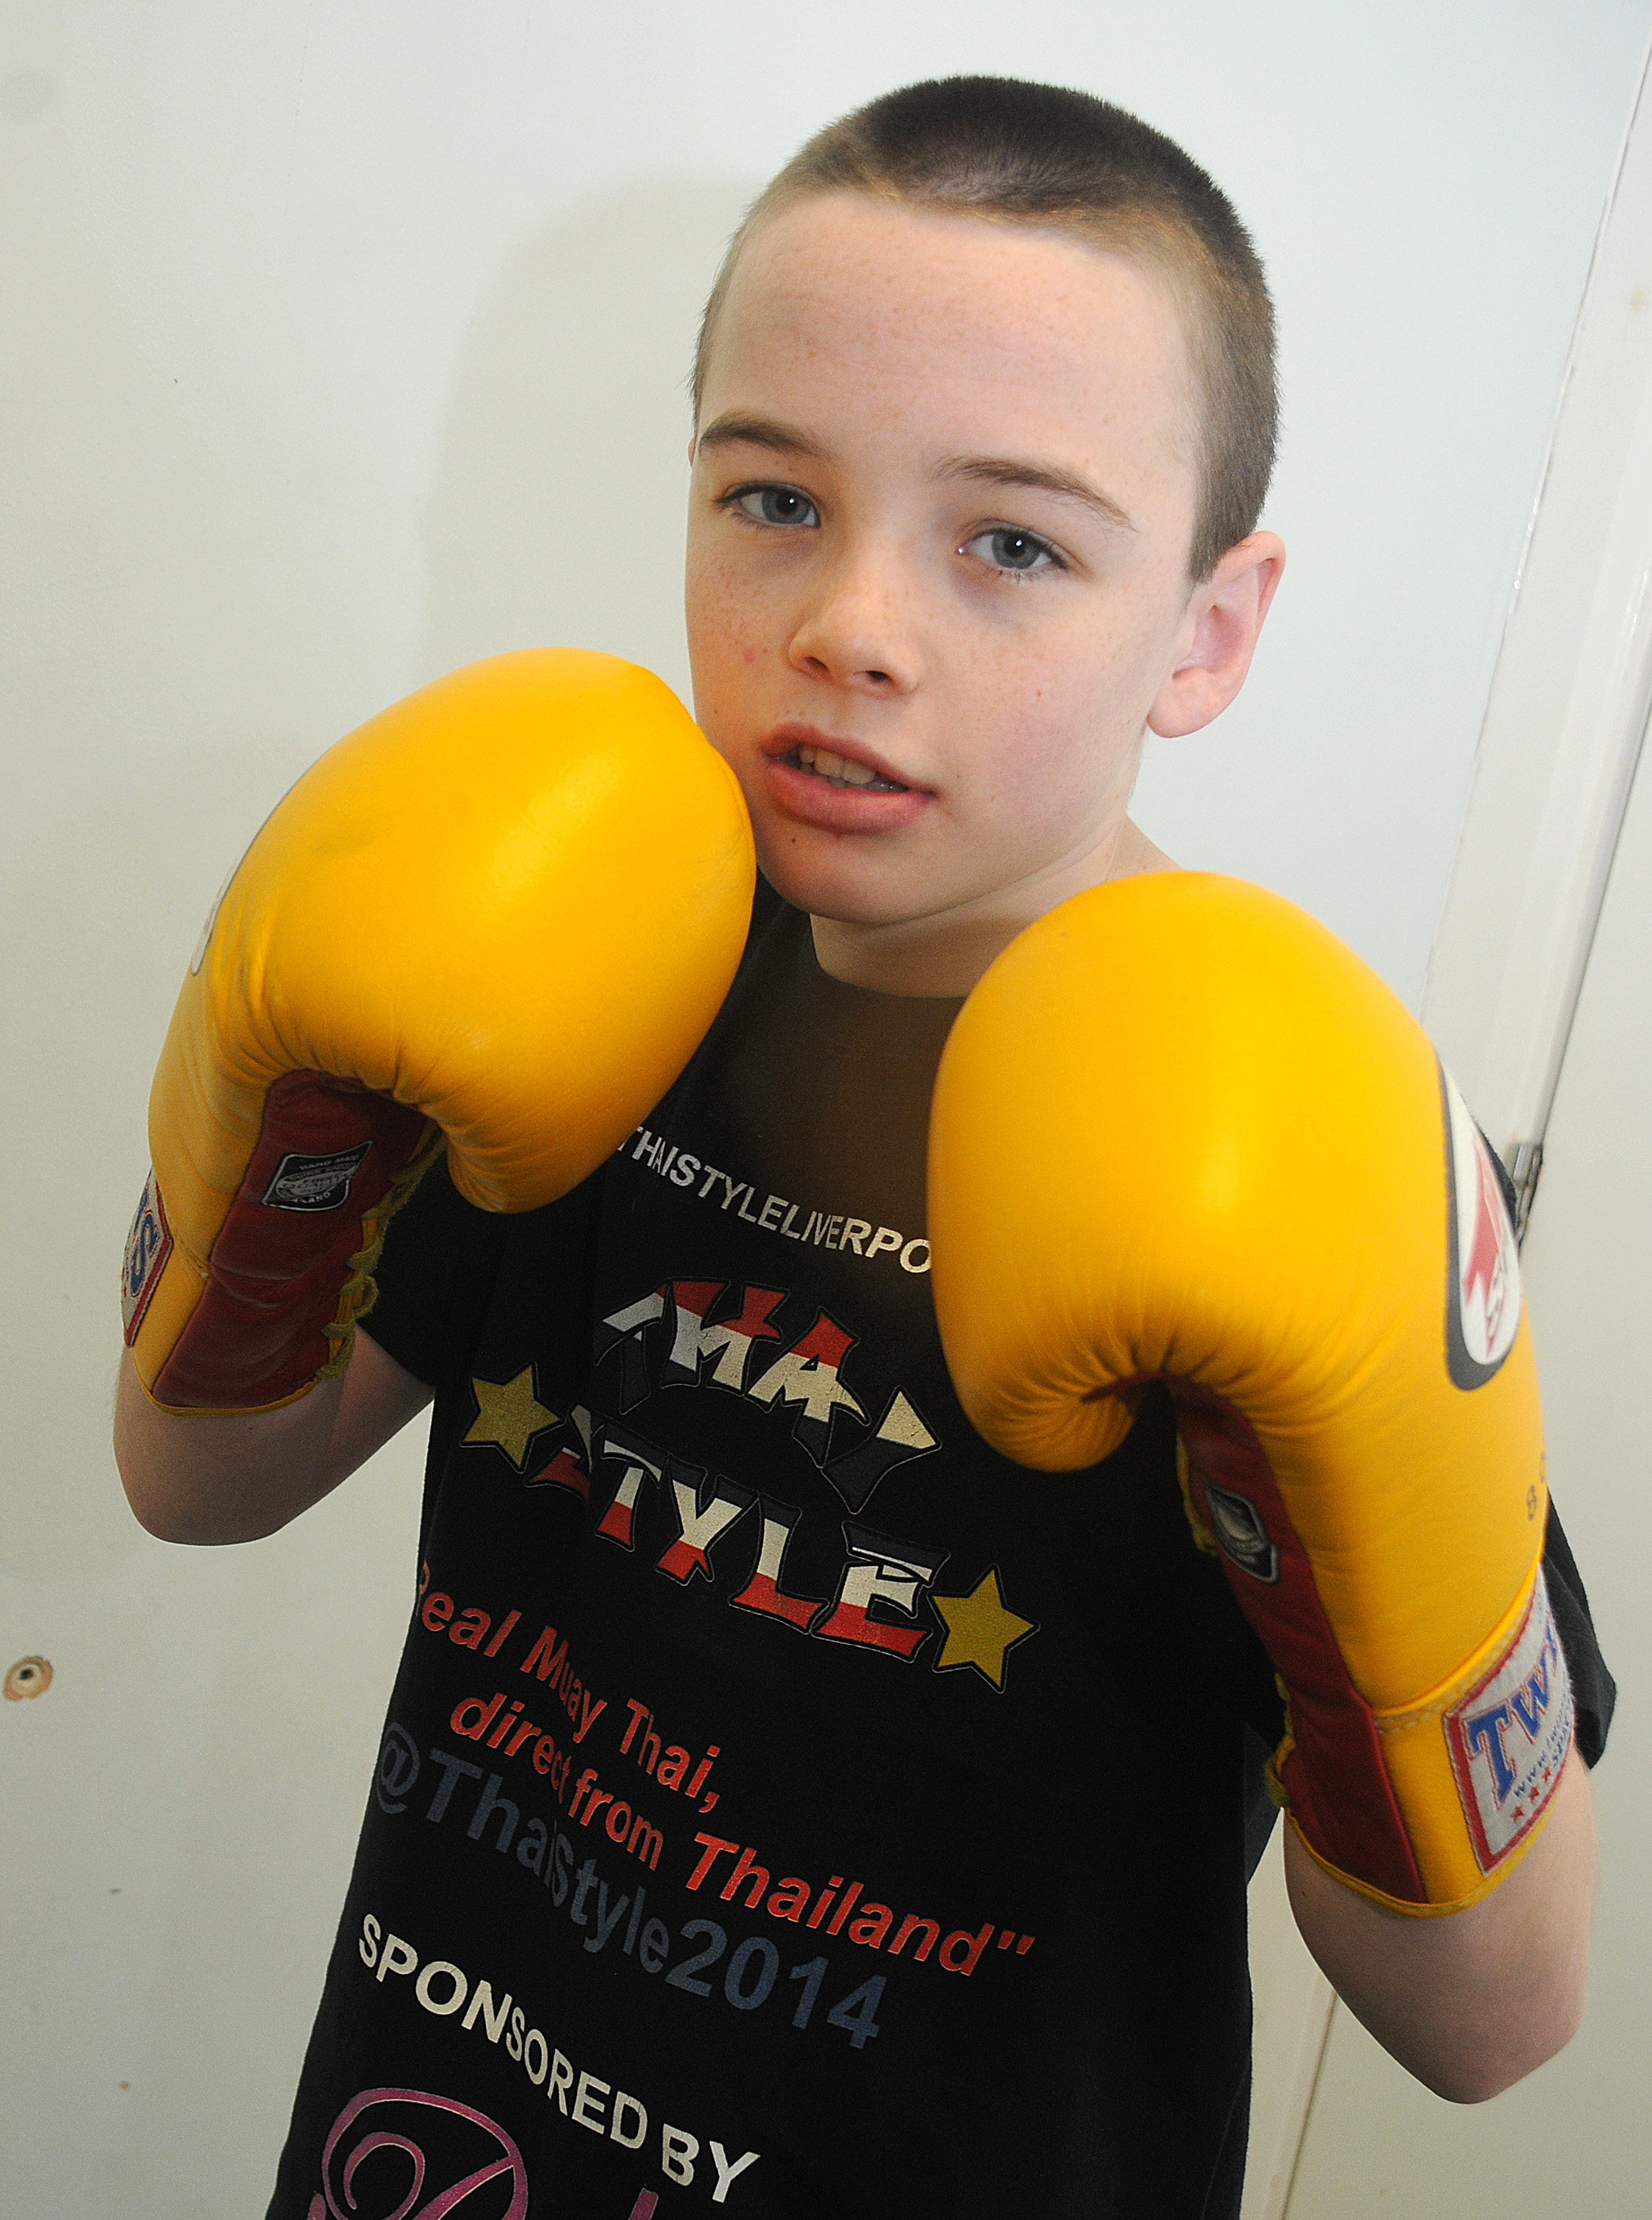 Champion Widnes schoolboy chosen to represent Team GB in Malaysia